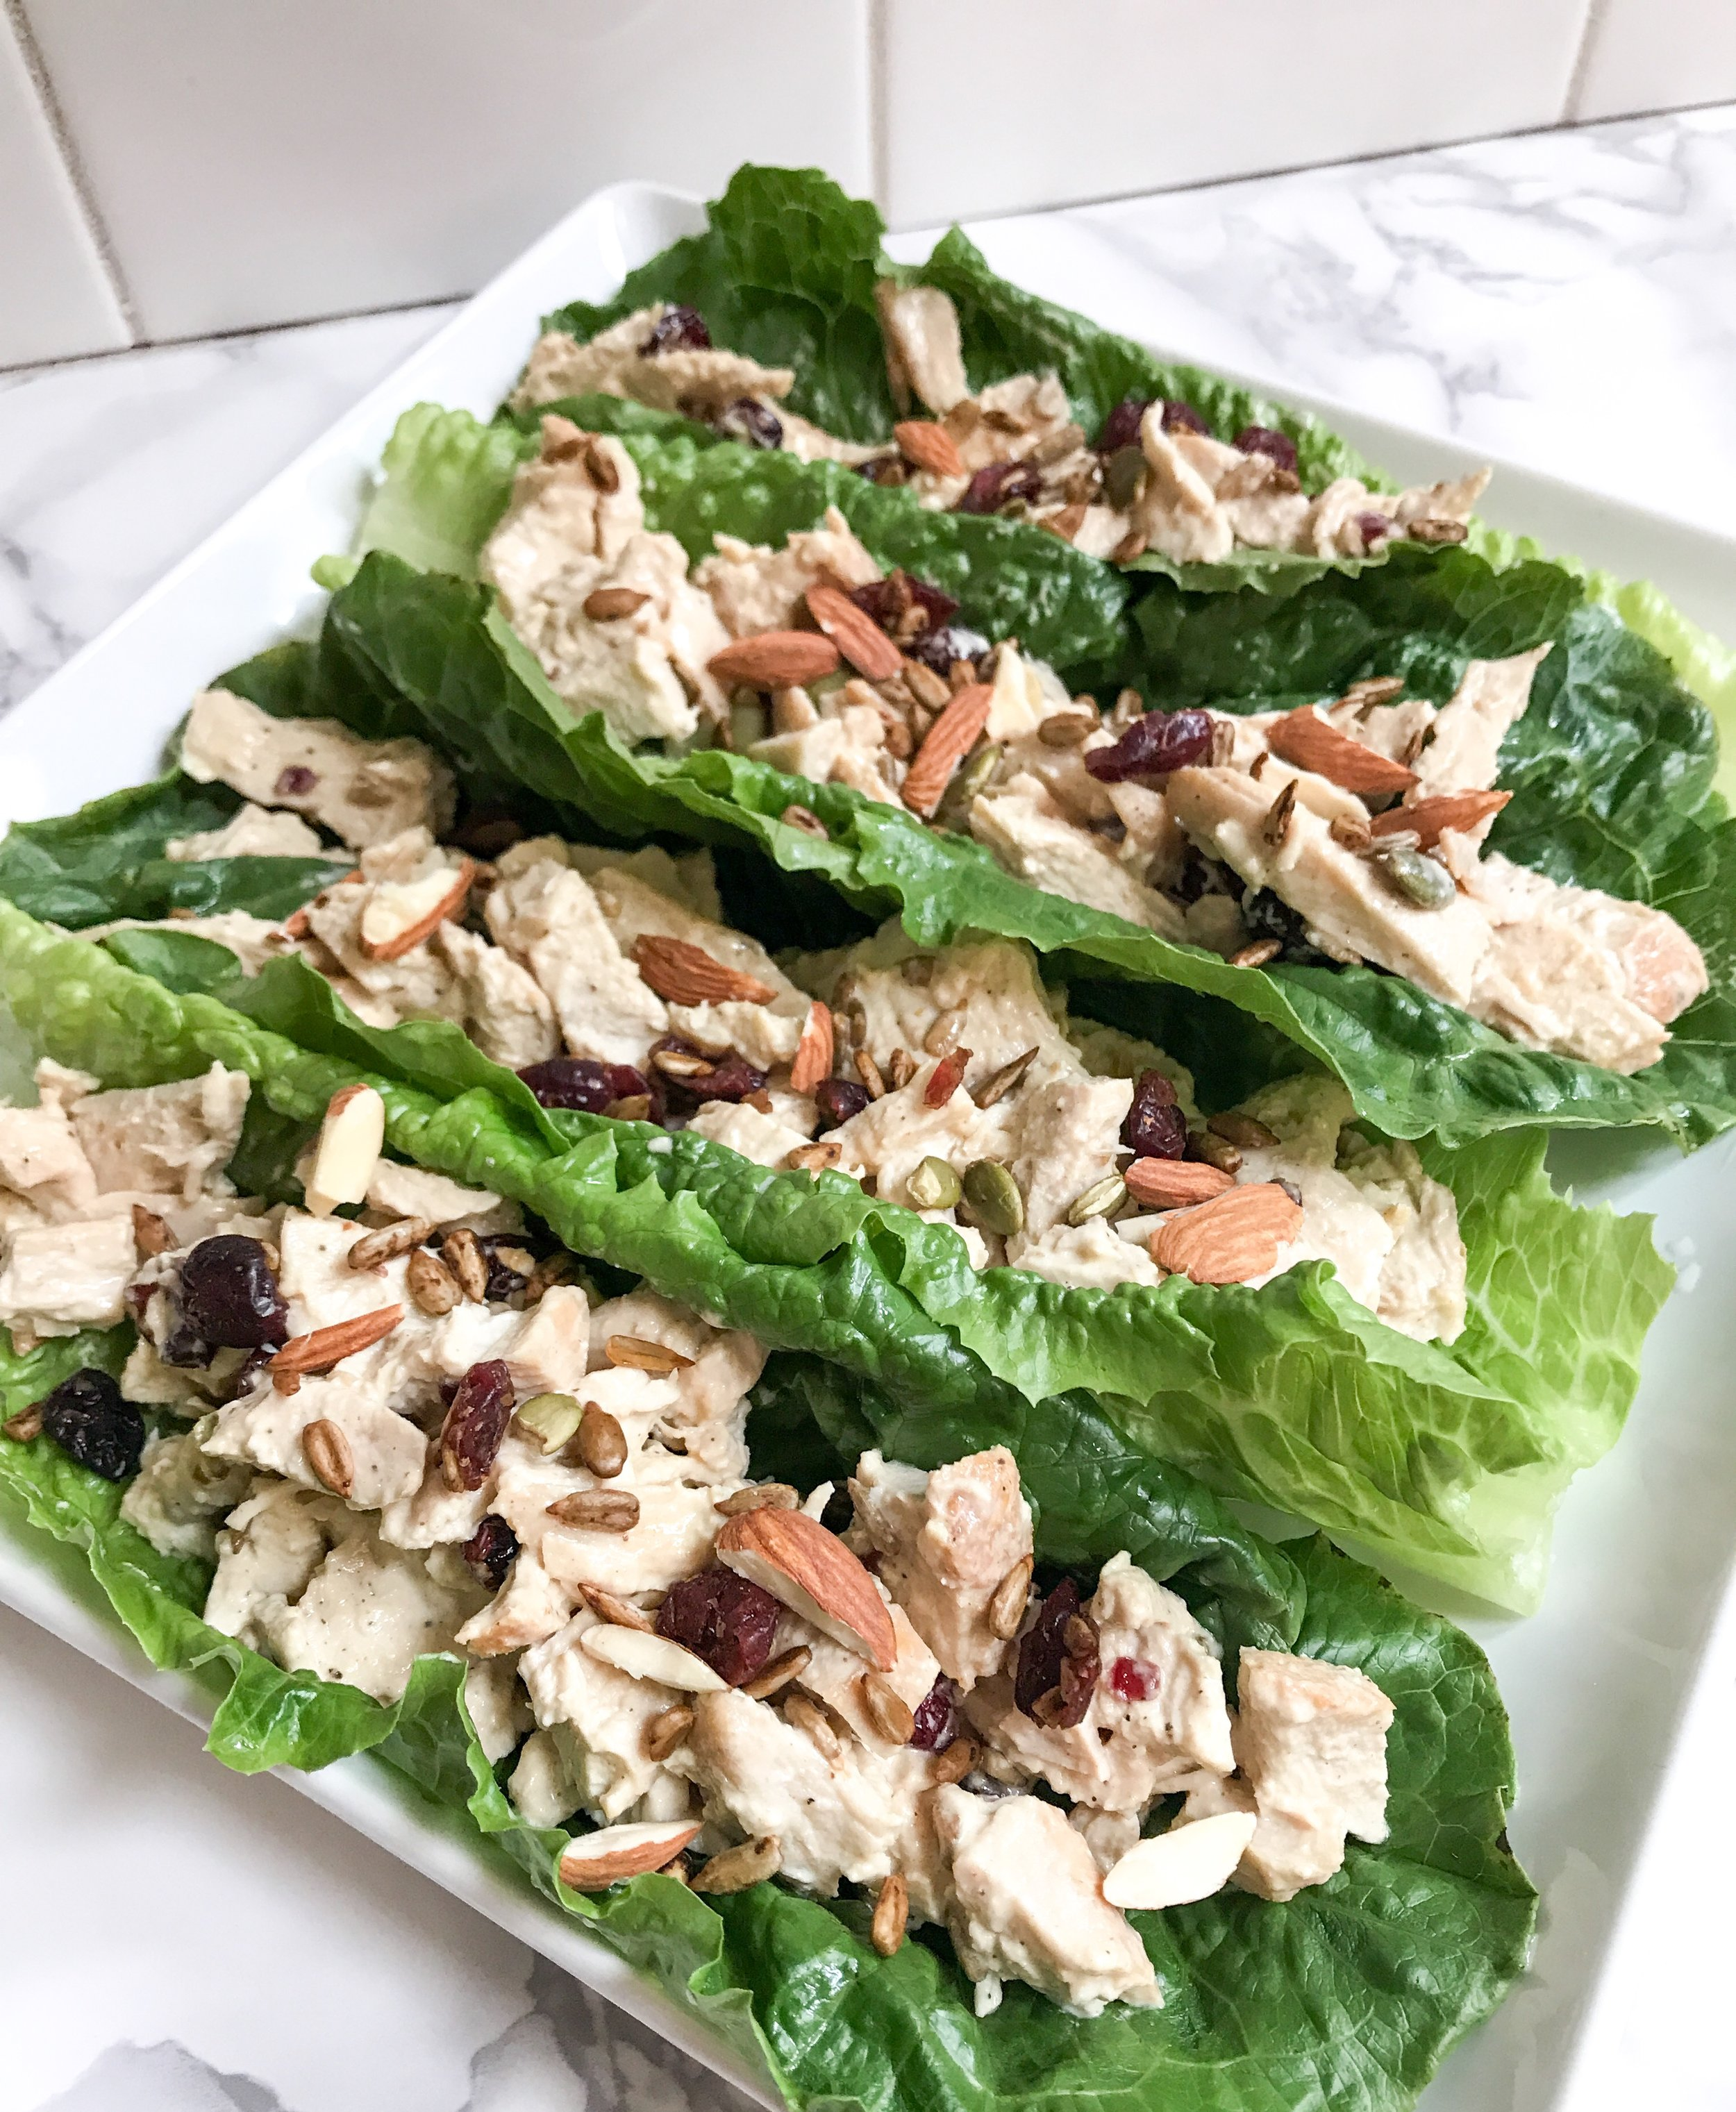 Dijon Mayo Cranberry Chicken Salad Lettuce Boats - Easy Lunch Ideas